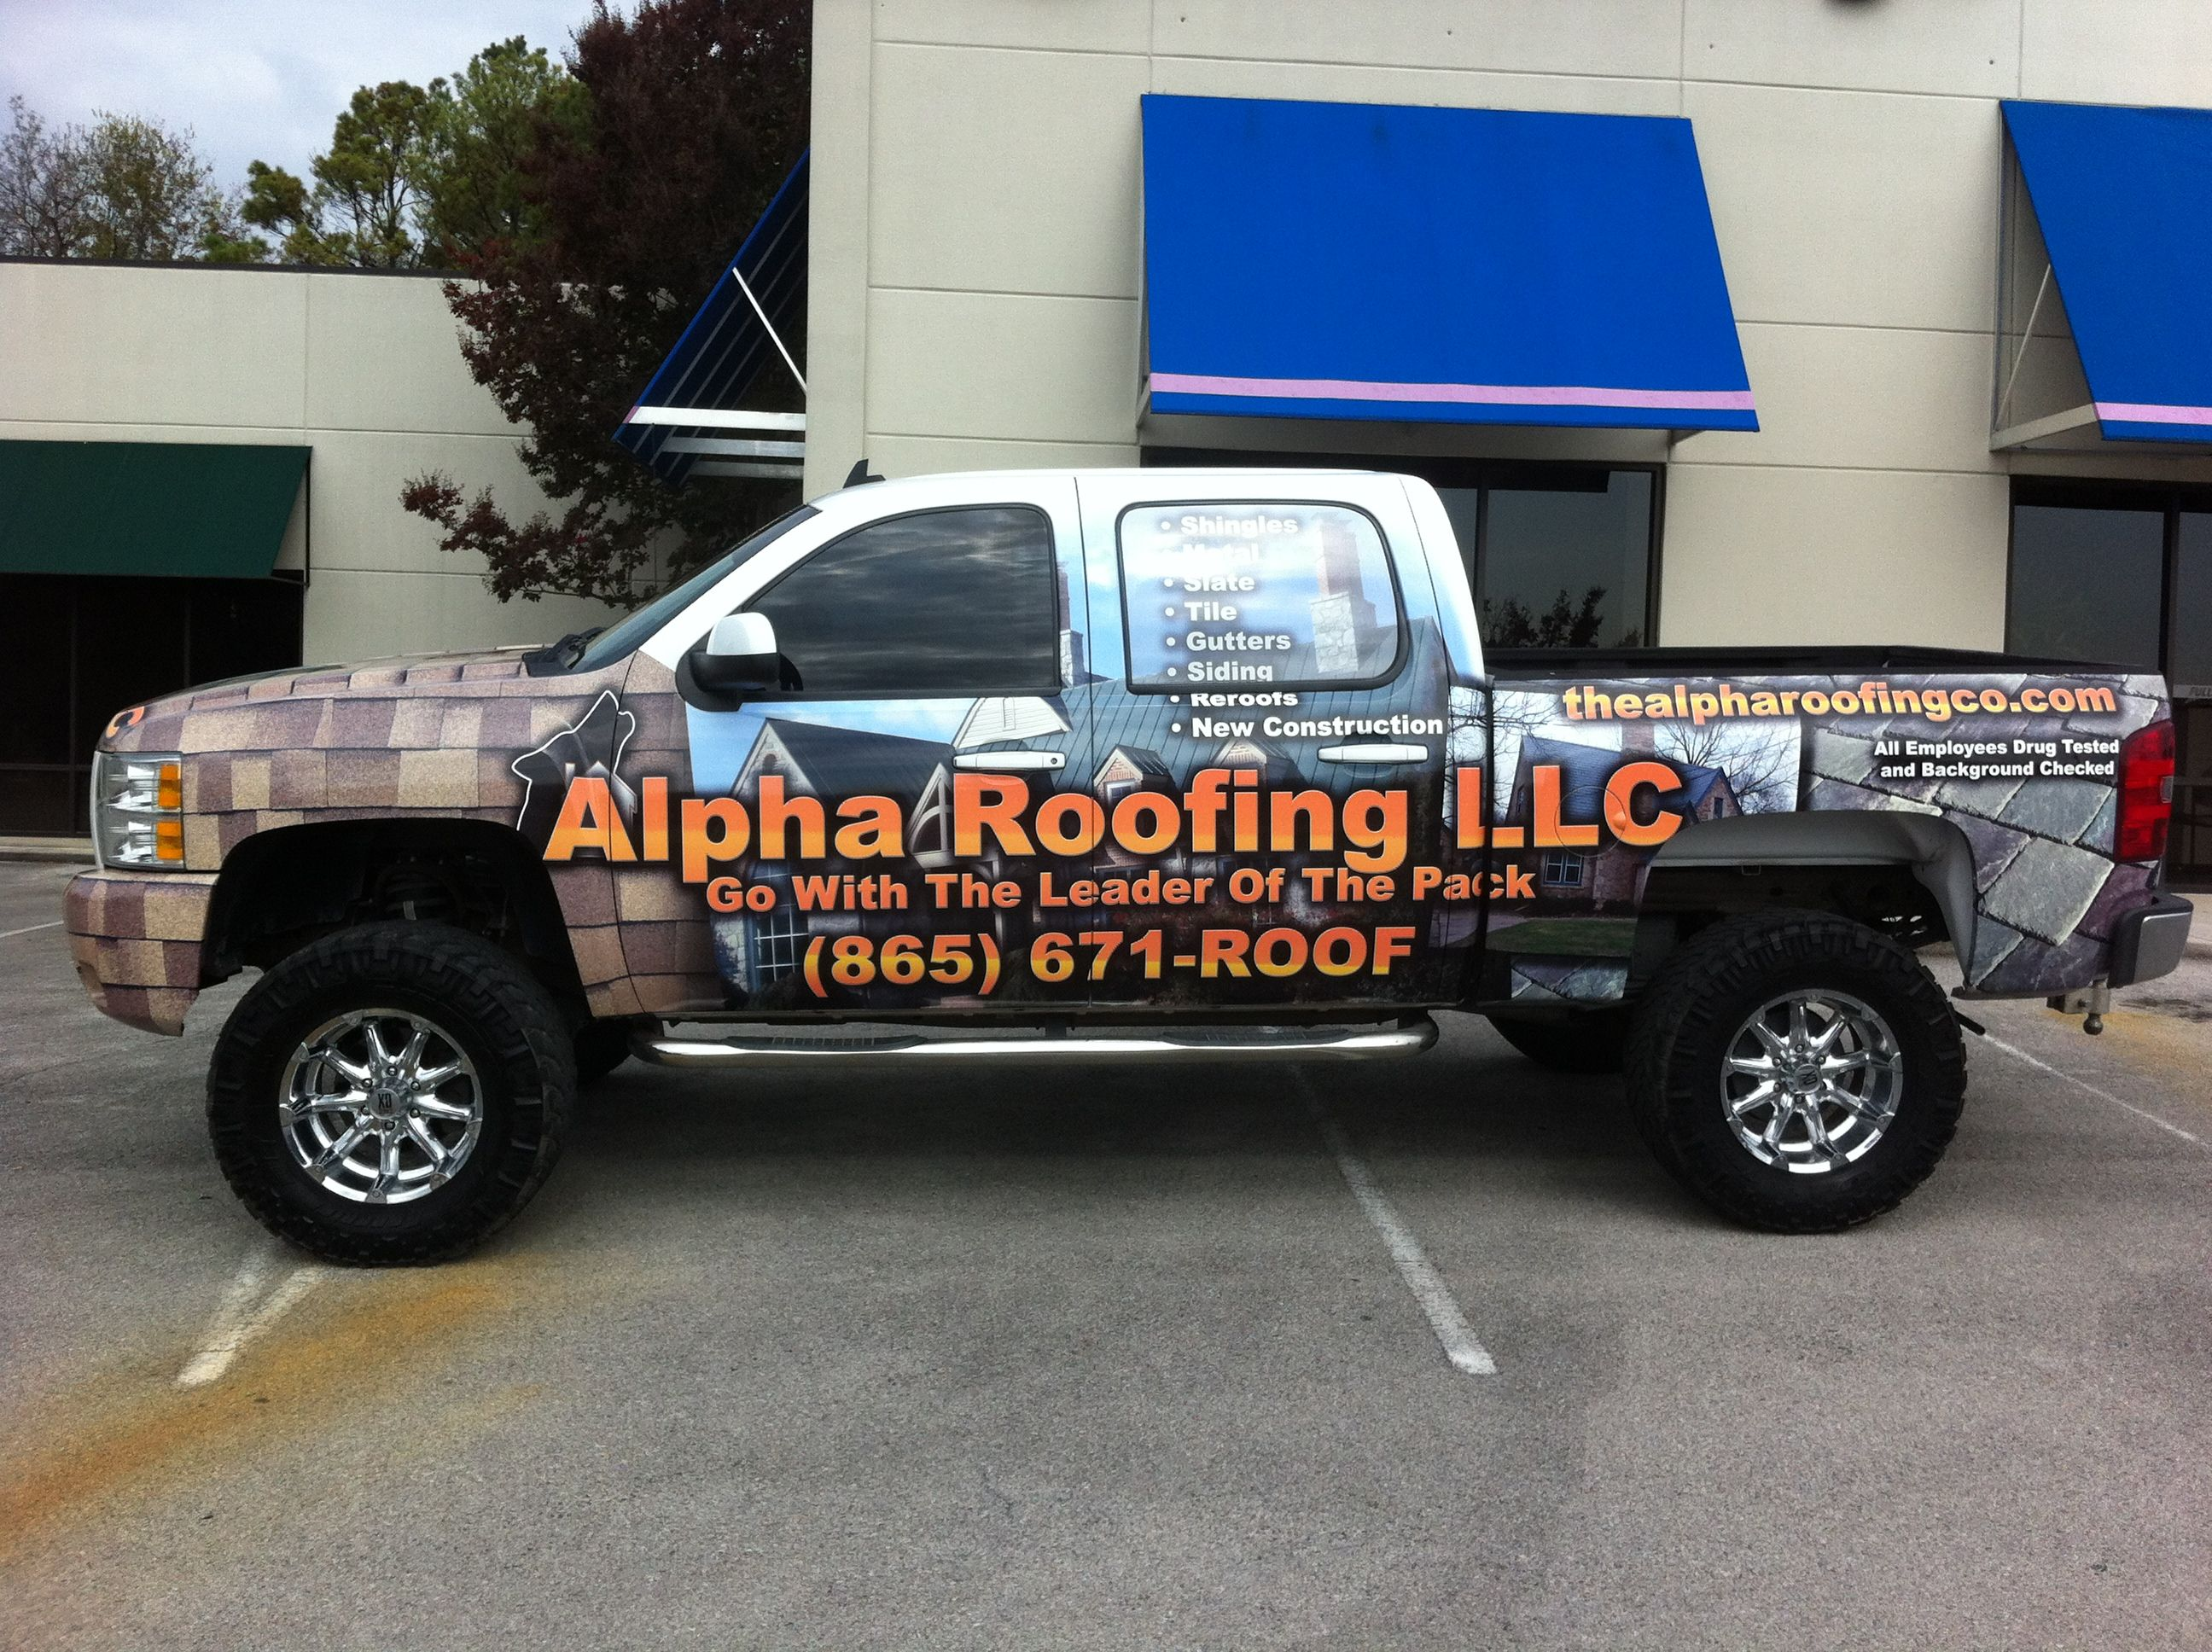 Alpha Roofing Vehicle Wrap 1 Knoxville TN vehiclegraphics